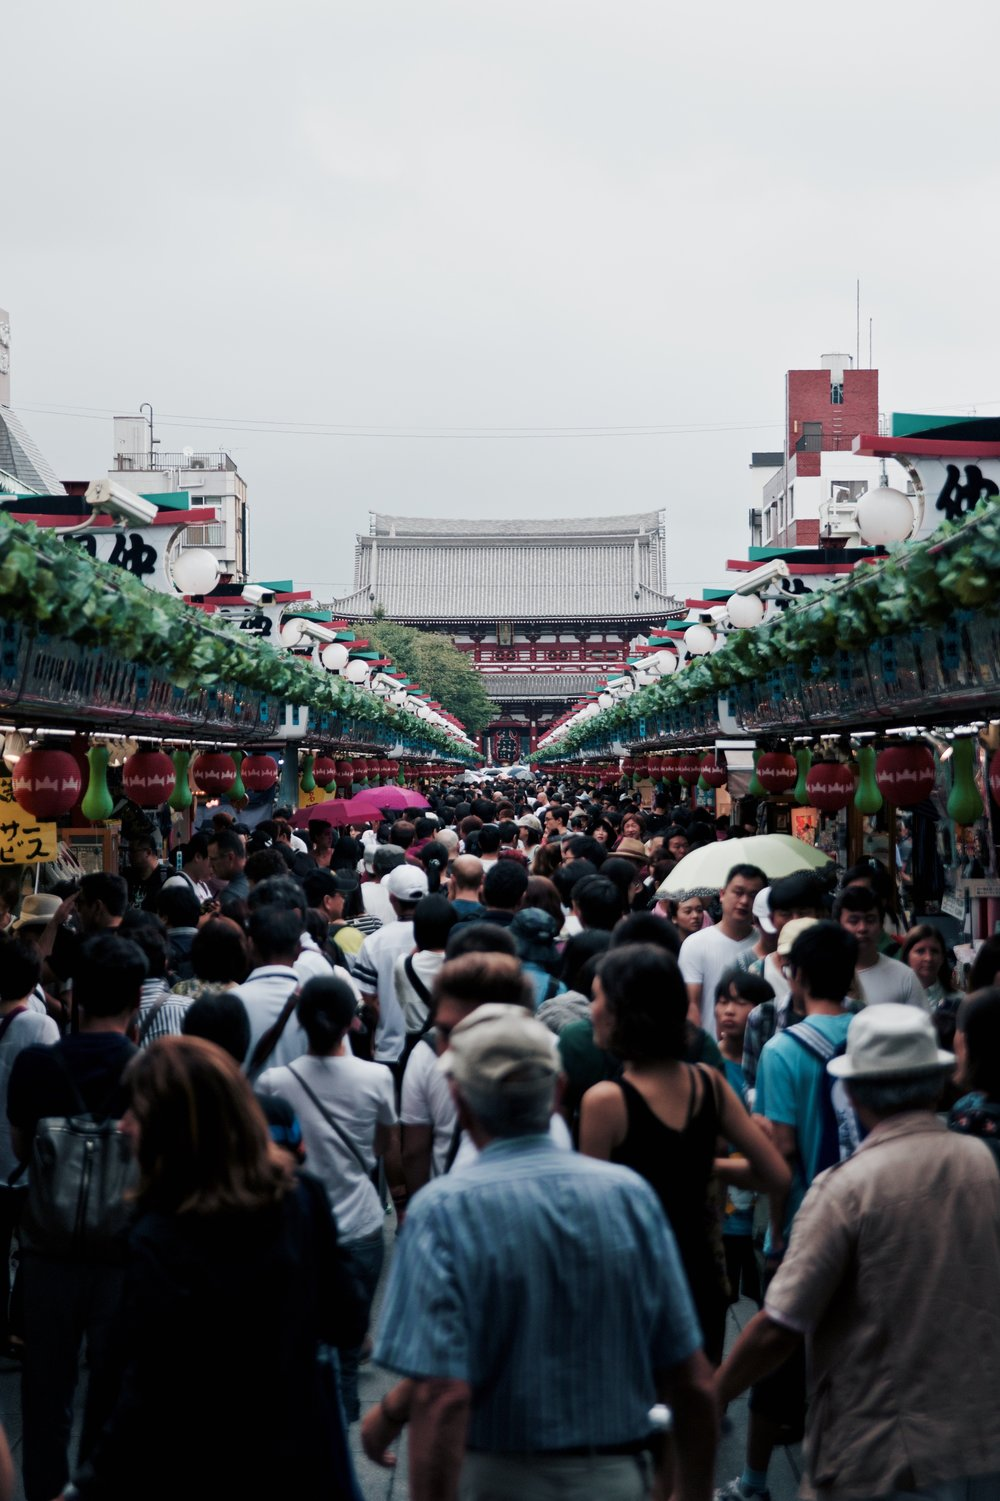 crowded street in japan with people in the background.jpg